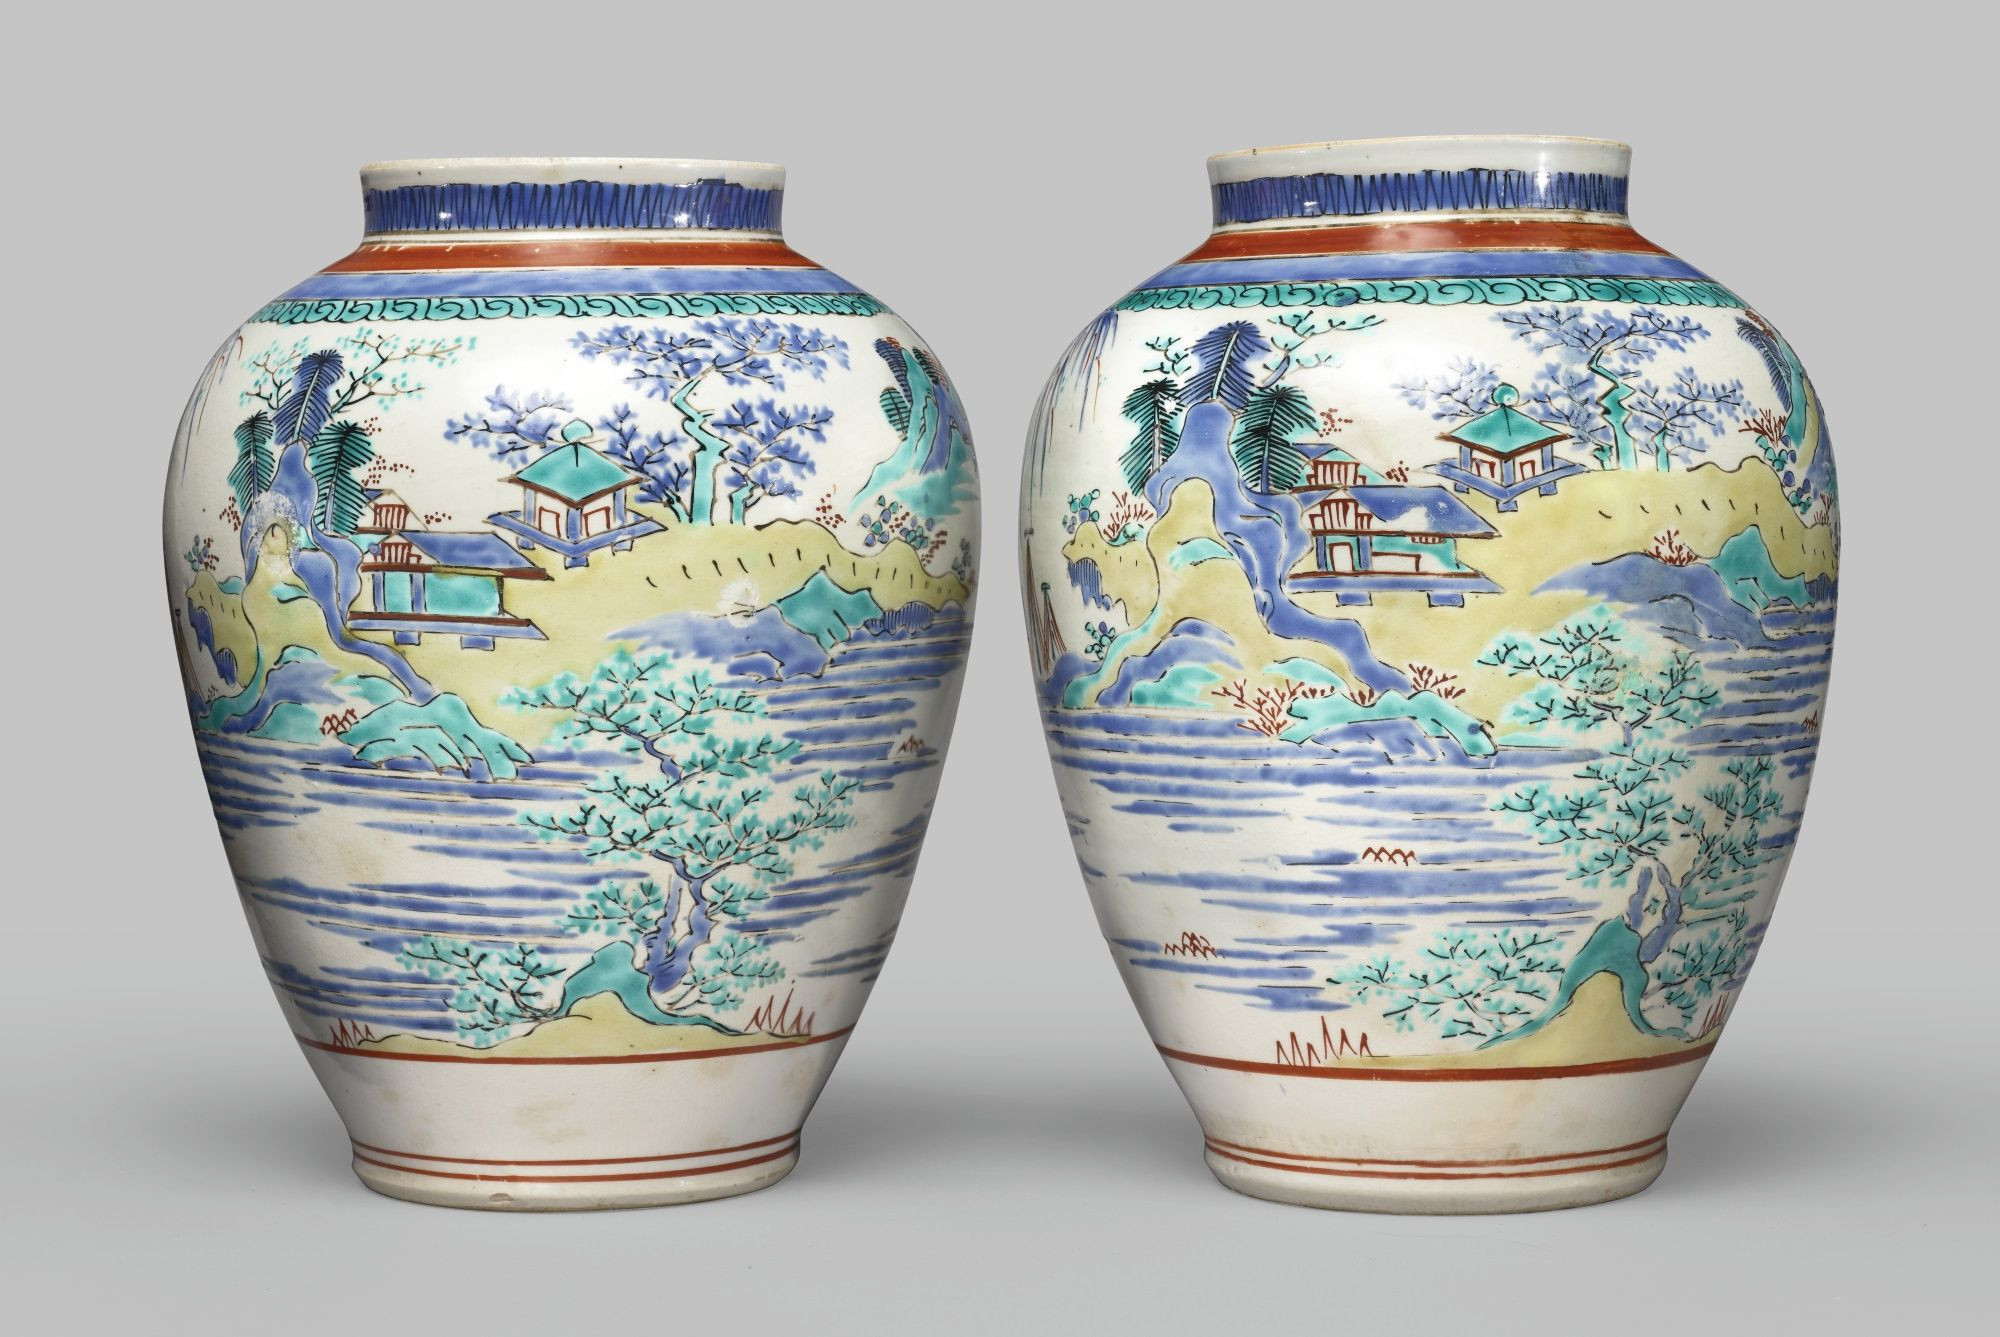 big white ceramic vase of a pair of large kakiemon vases japan late 17th century each of with a pair of large kakiemon vases japan late 17th century each of ovoid form decorated in overglazed blue green yellow and iron red depicting a